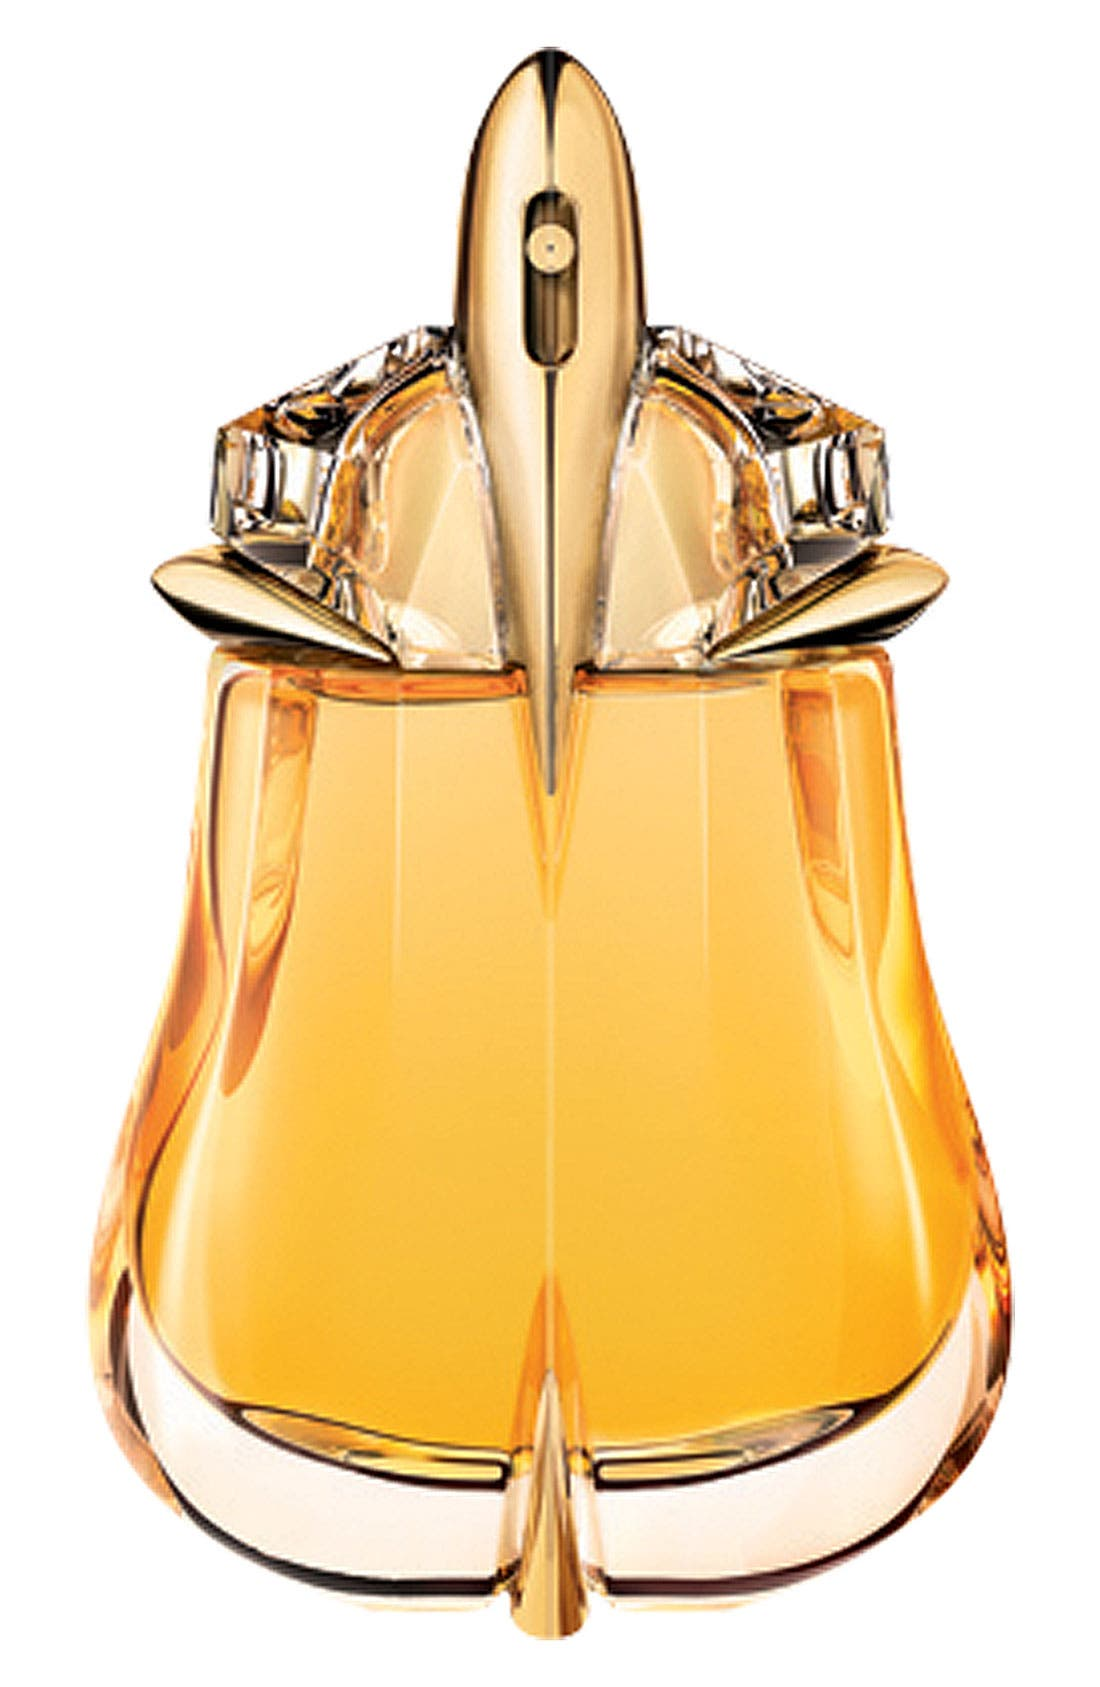 Alien Essence Absolue by Mugler Fragrance,                             Main thumbnail 1, color,                             NO COLOR